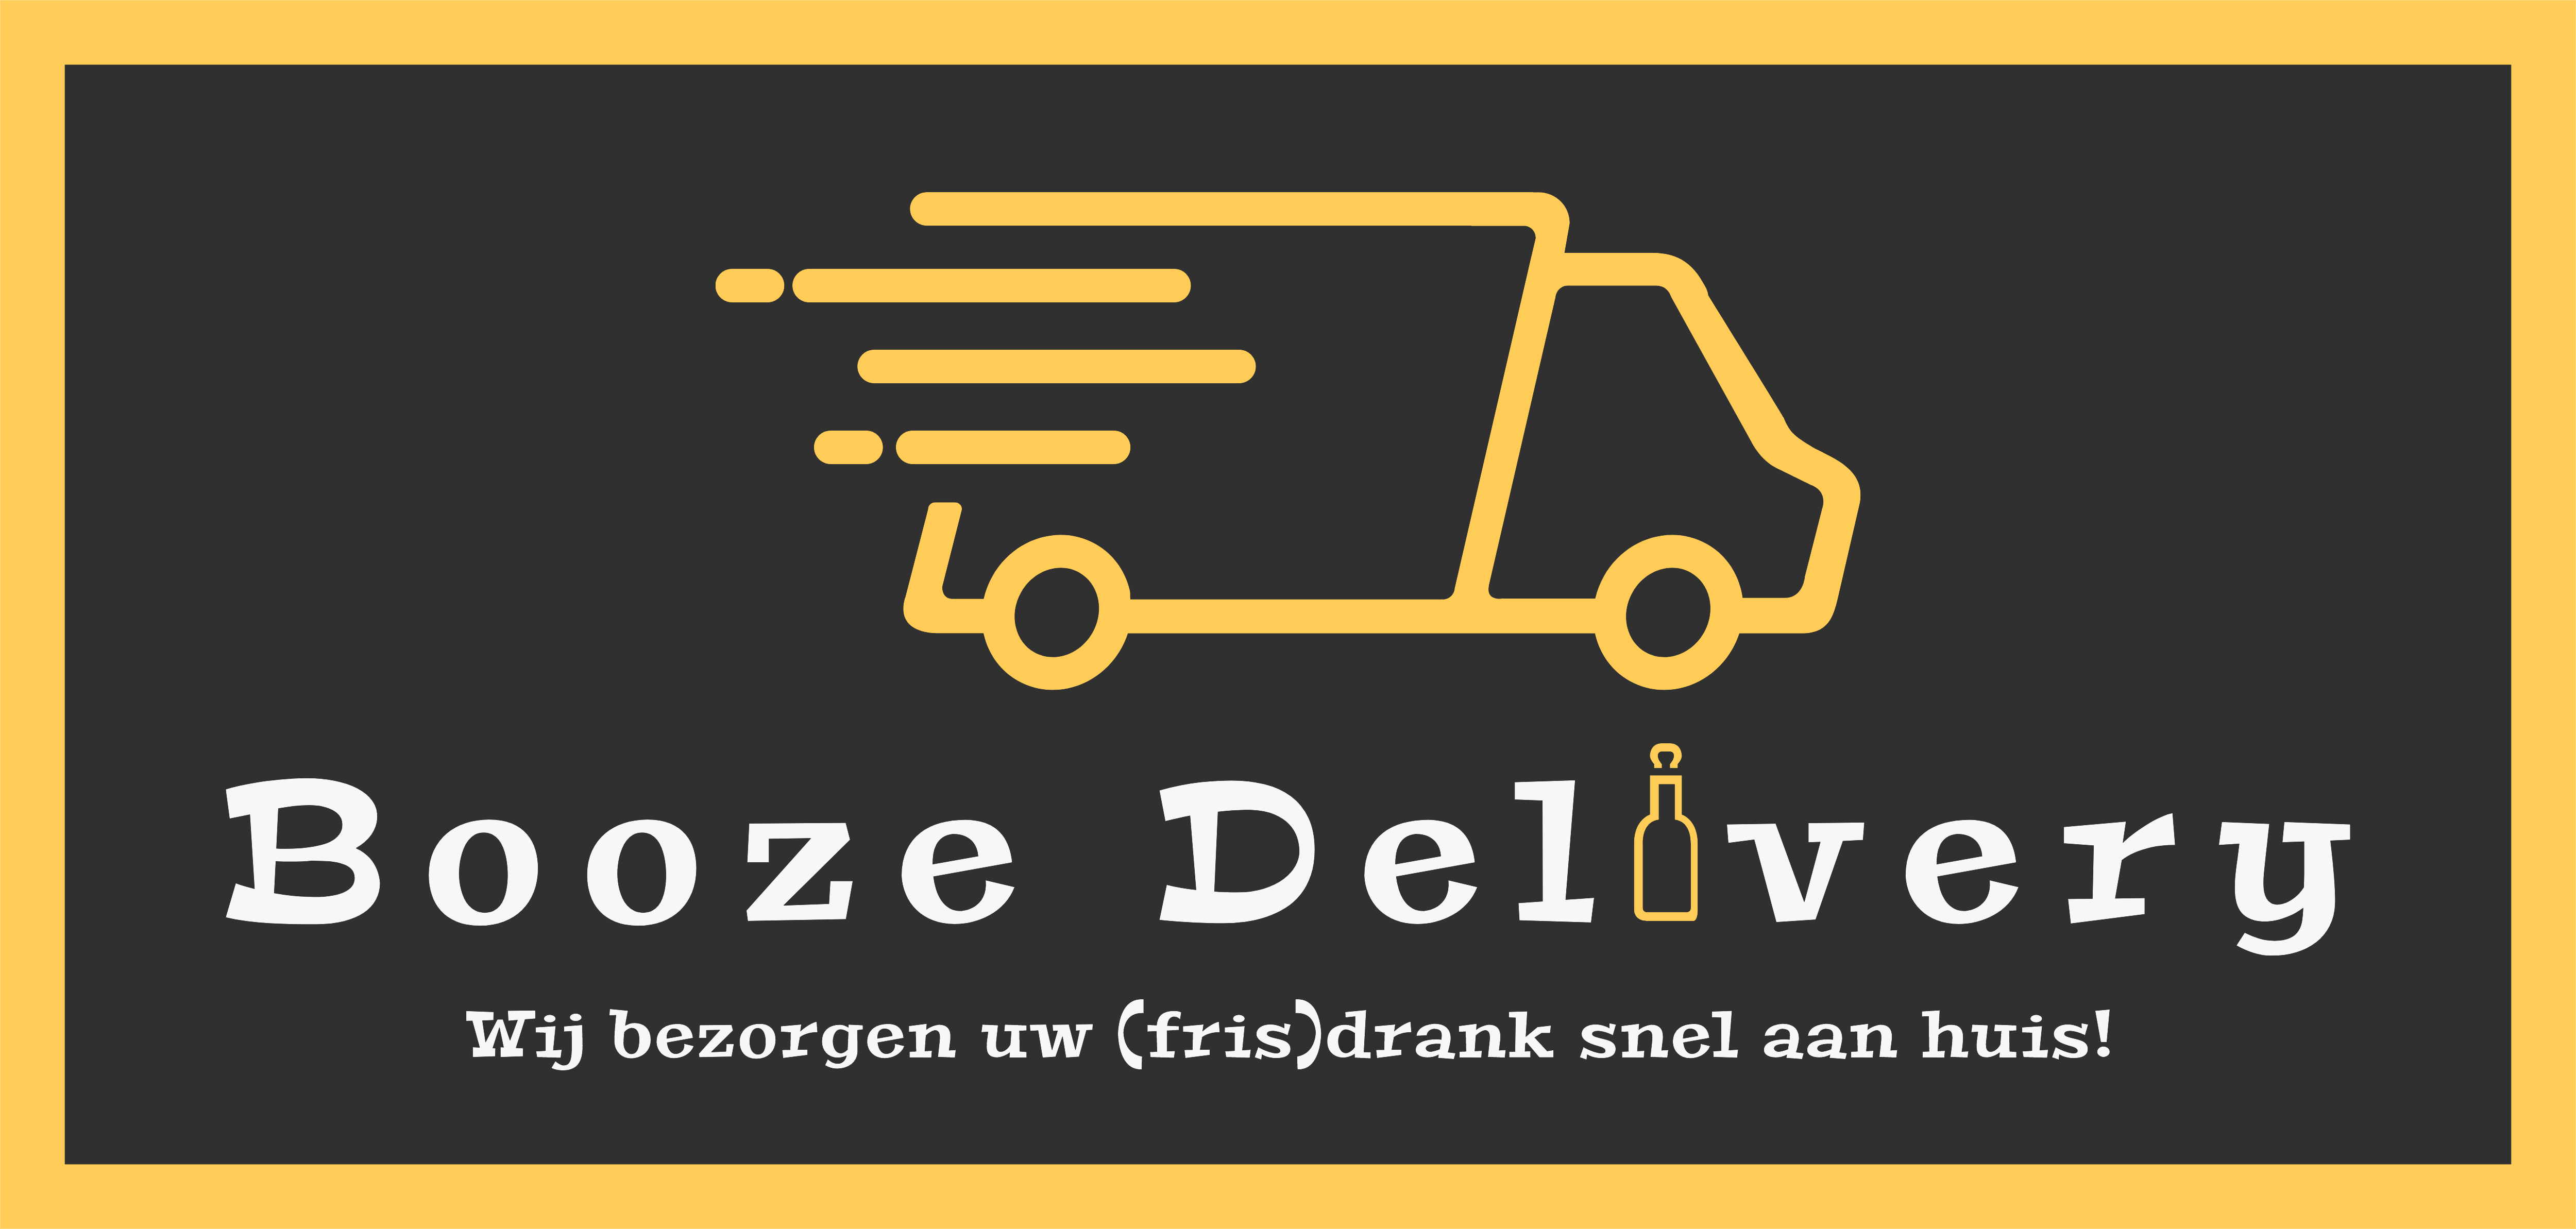 Biertaxi Booze Delivery |